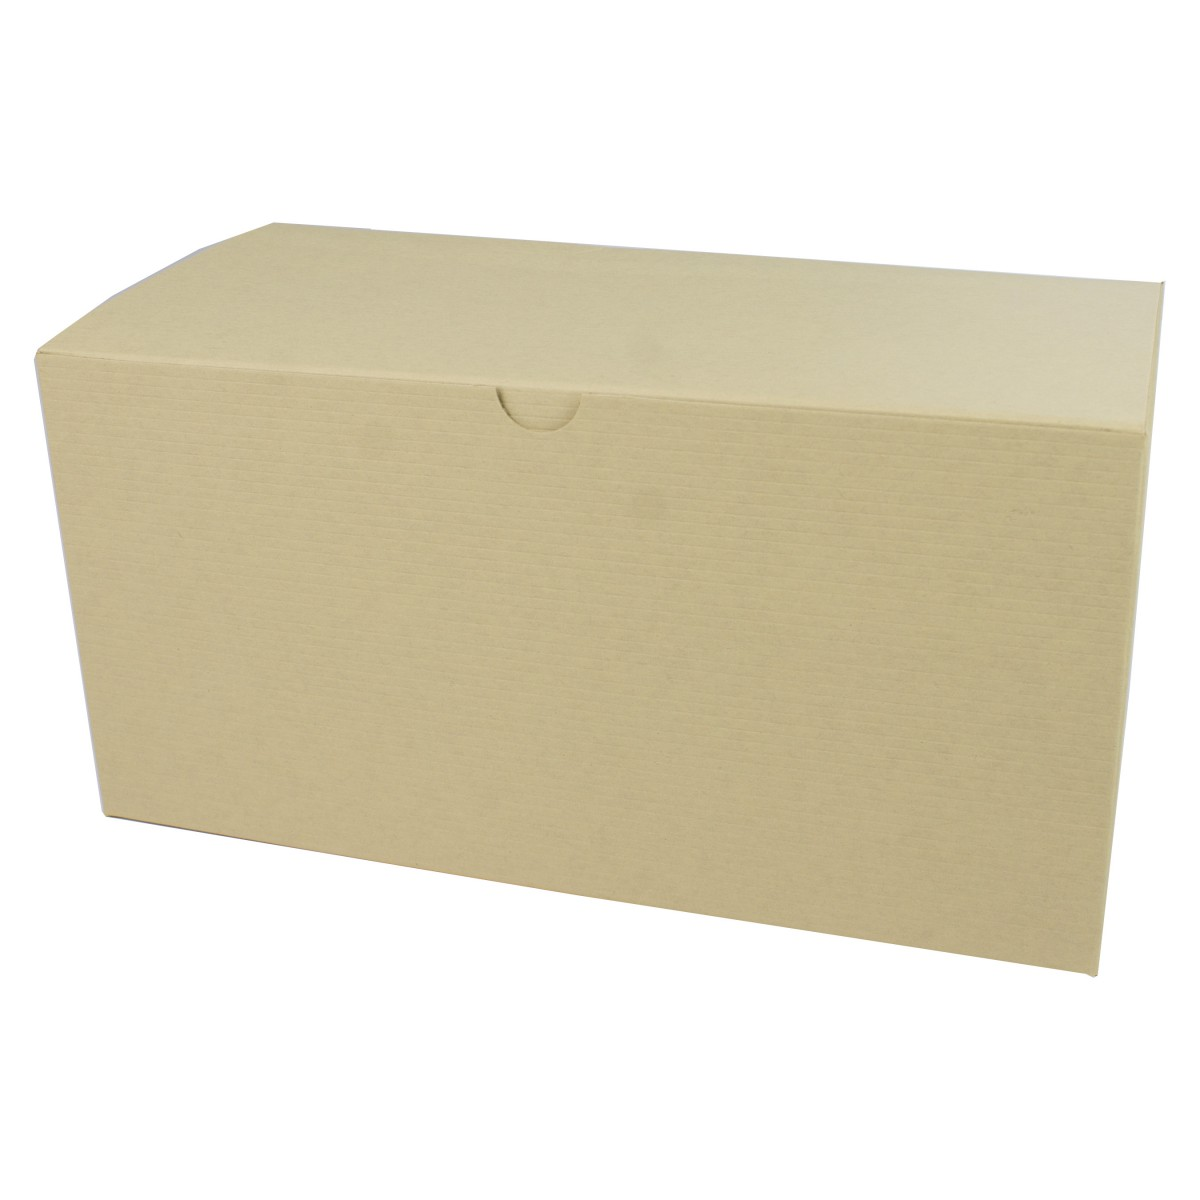 12 x 6 x 6 OATMEAL TINTED TUCK-TOP GIFT BOXES